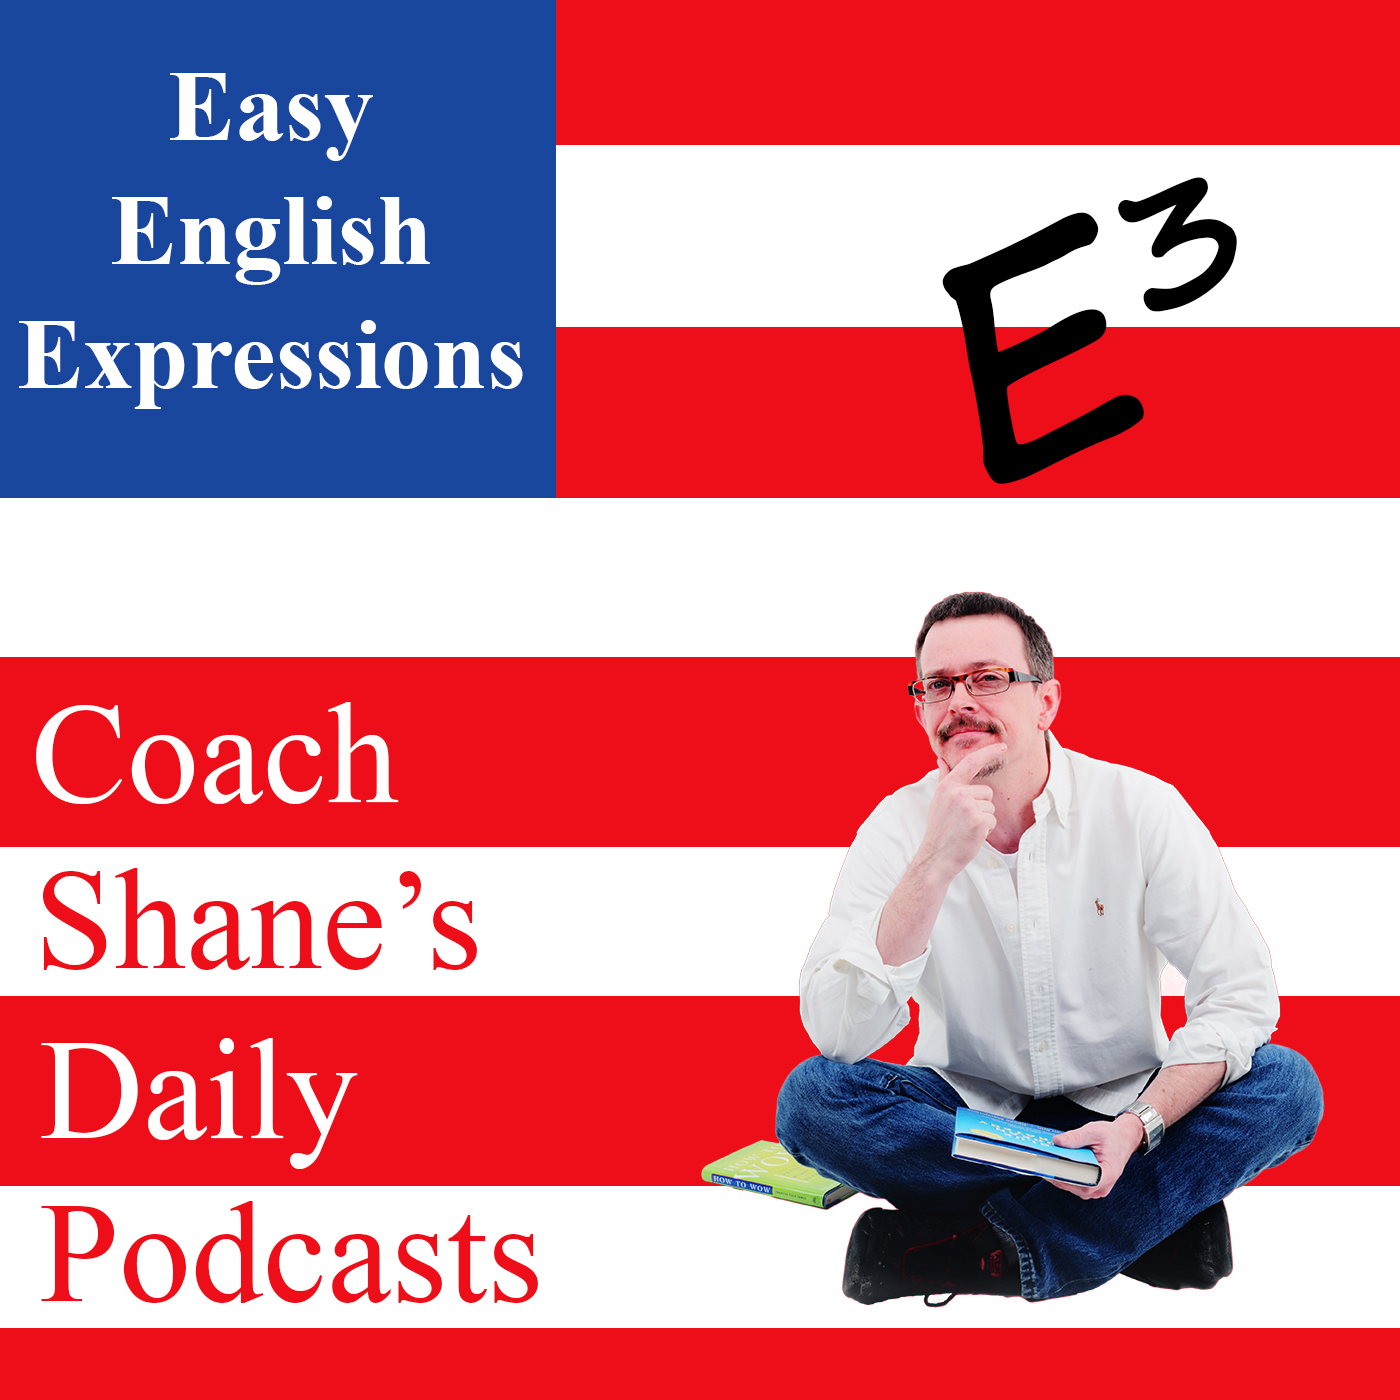 24 Daily Easy English Expression PODCAST—...pathetic